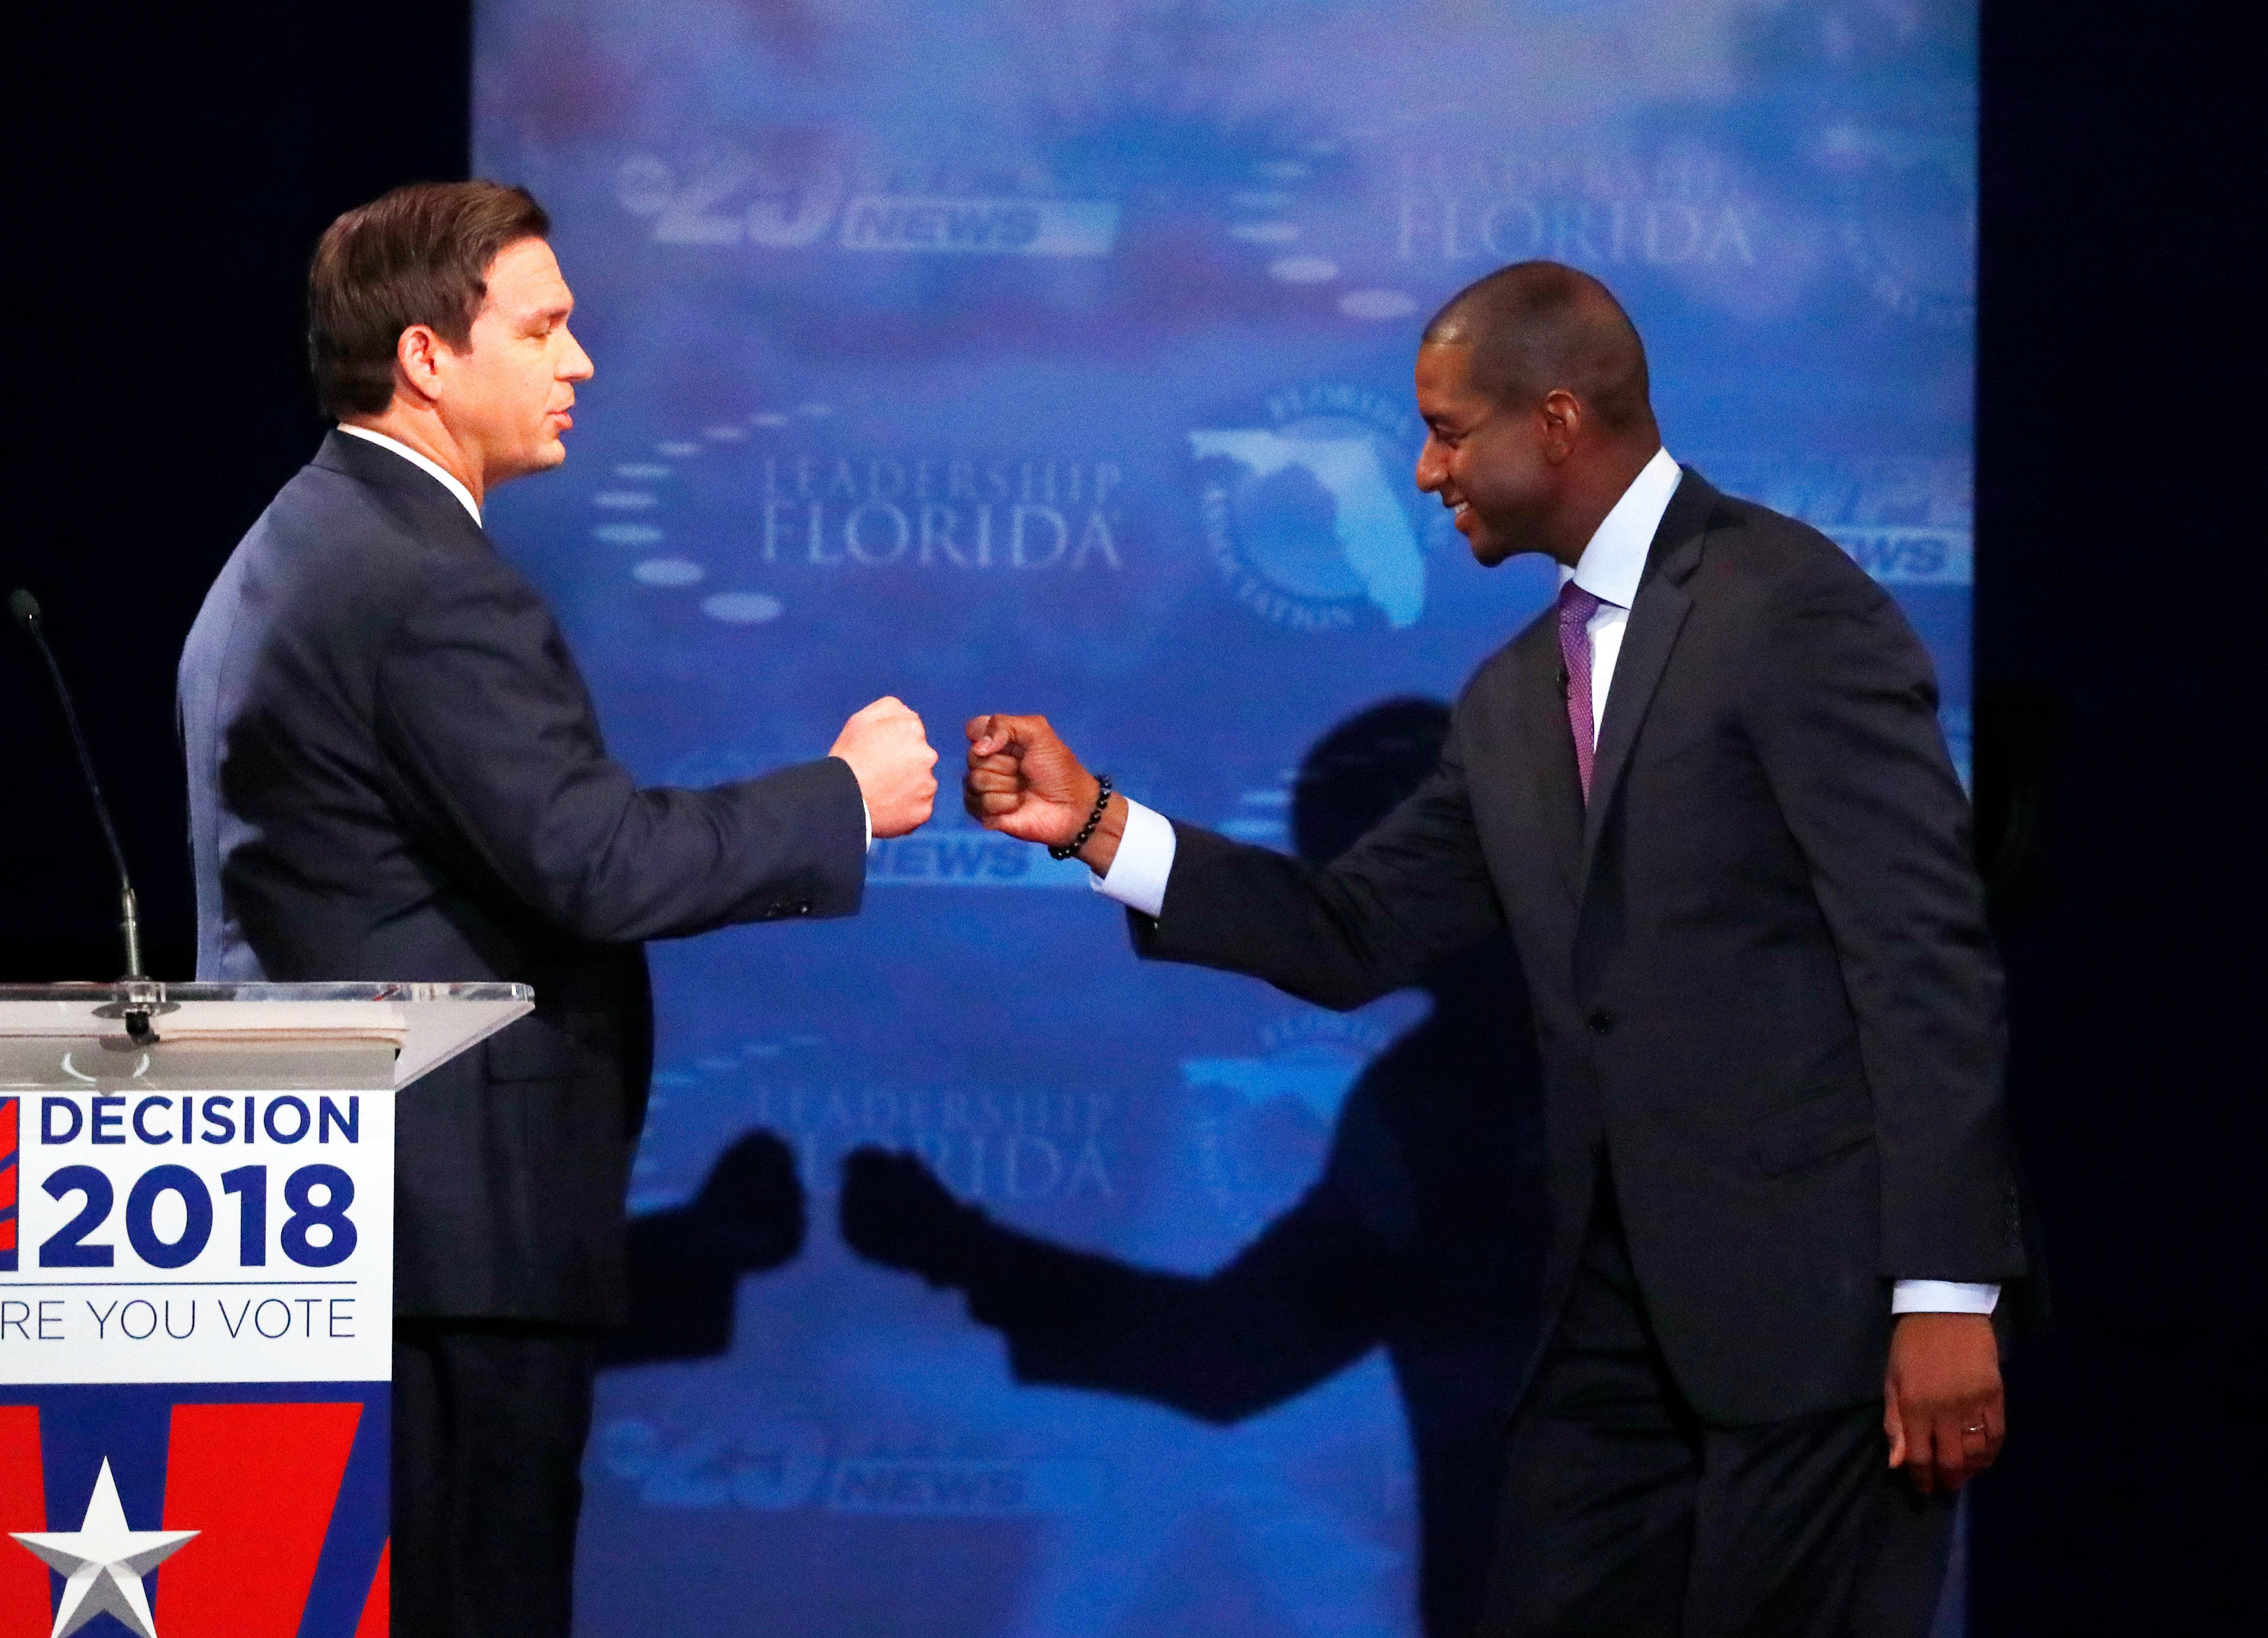 Republican Ron De Santis and Democrat Andrew Gillum fist-bump at their debate last month